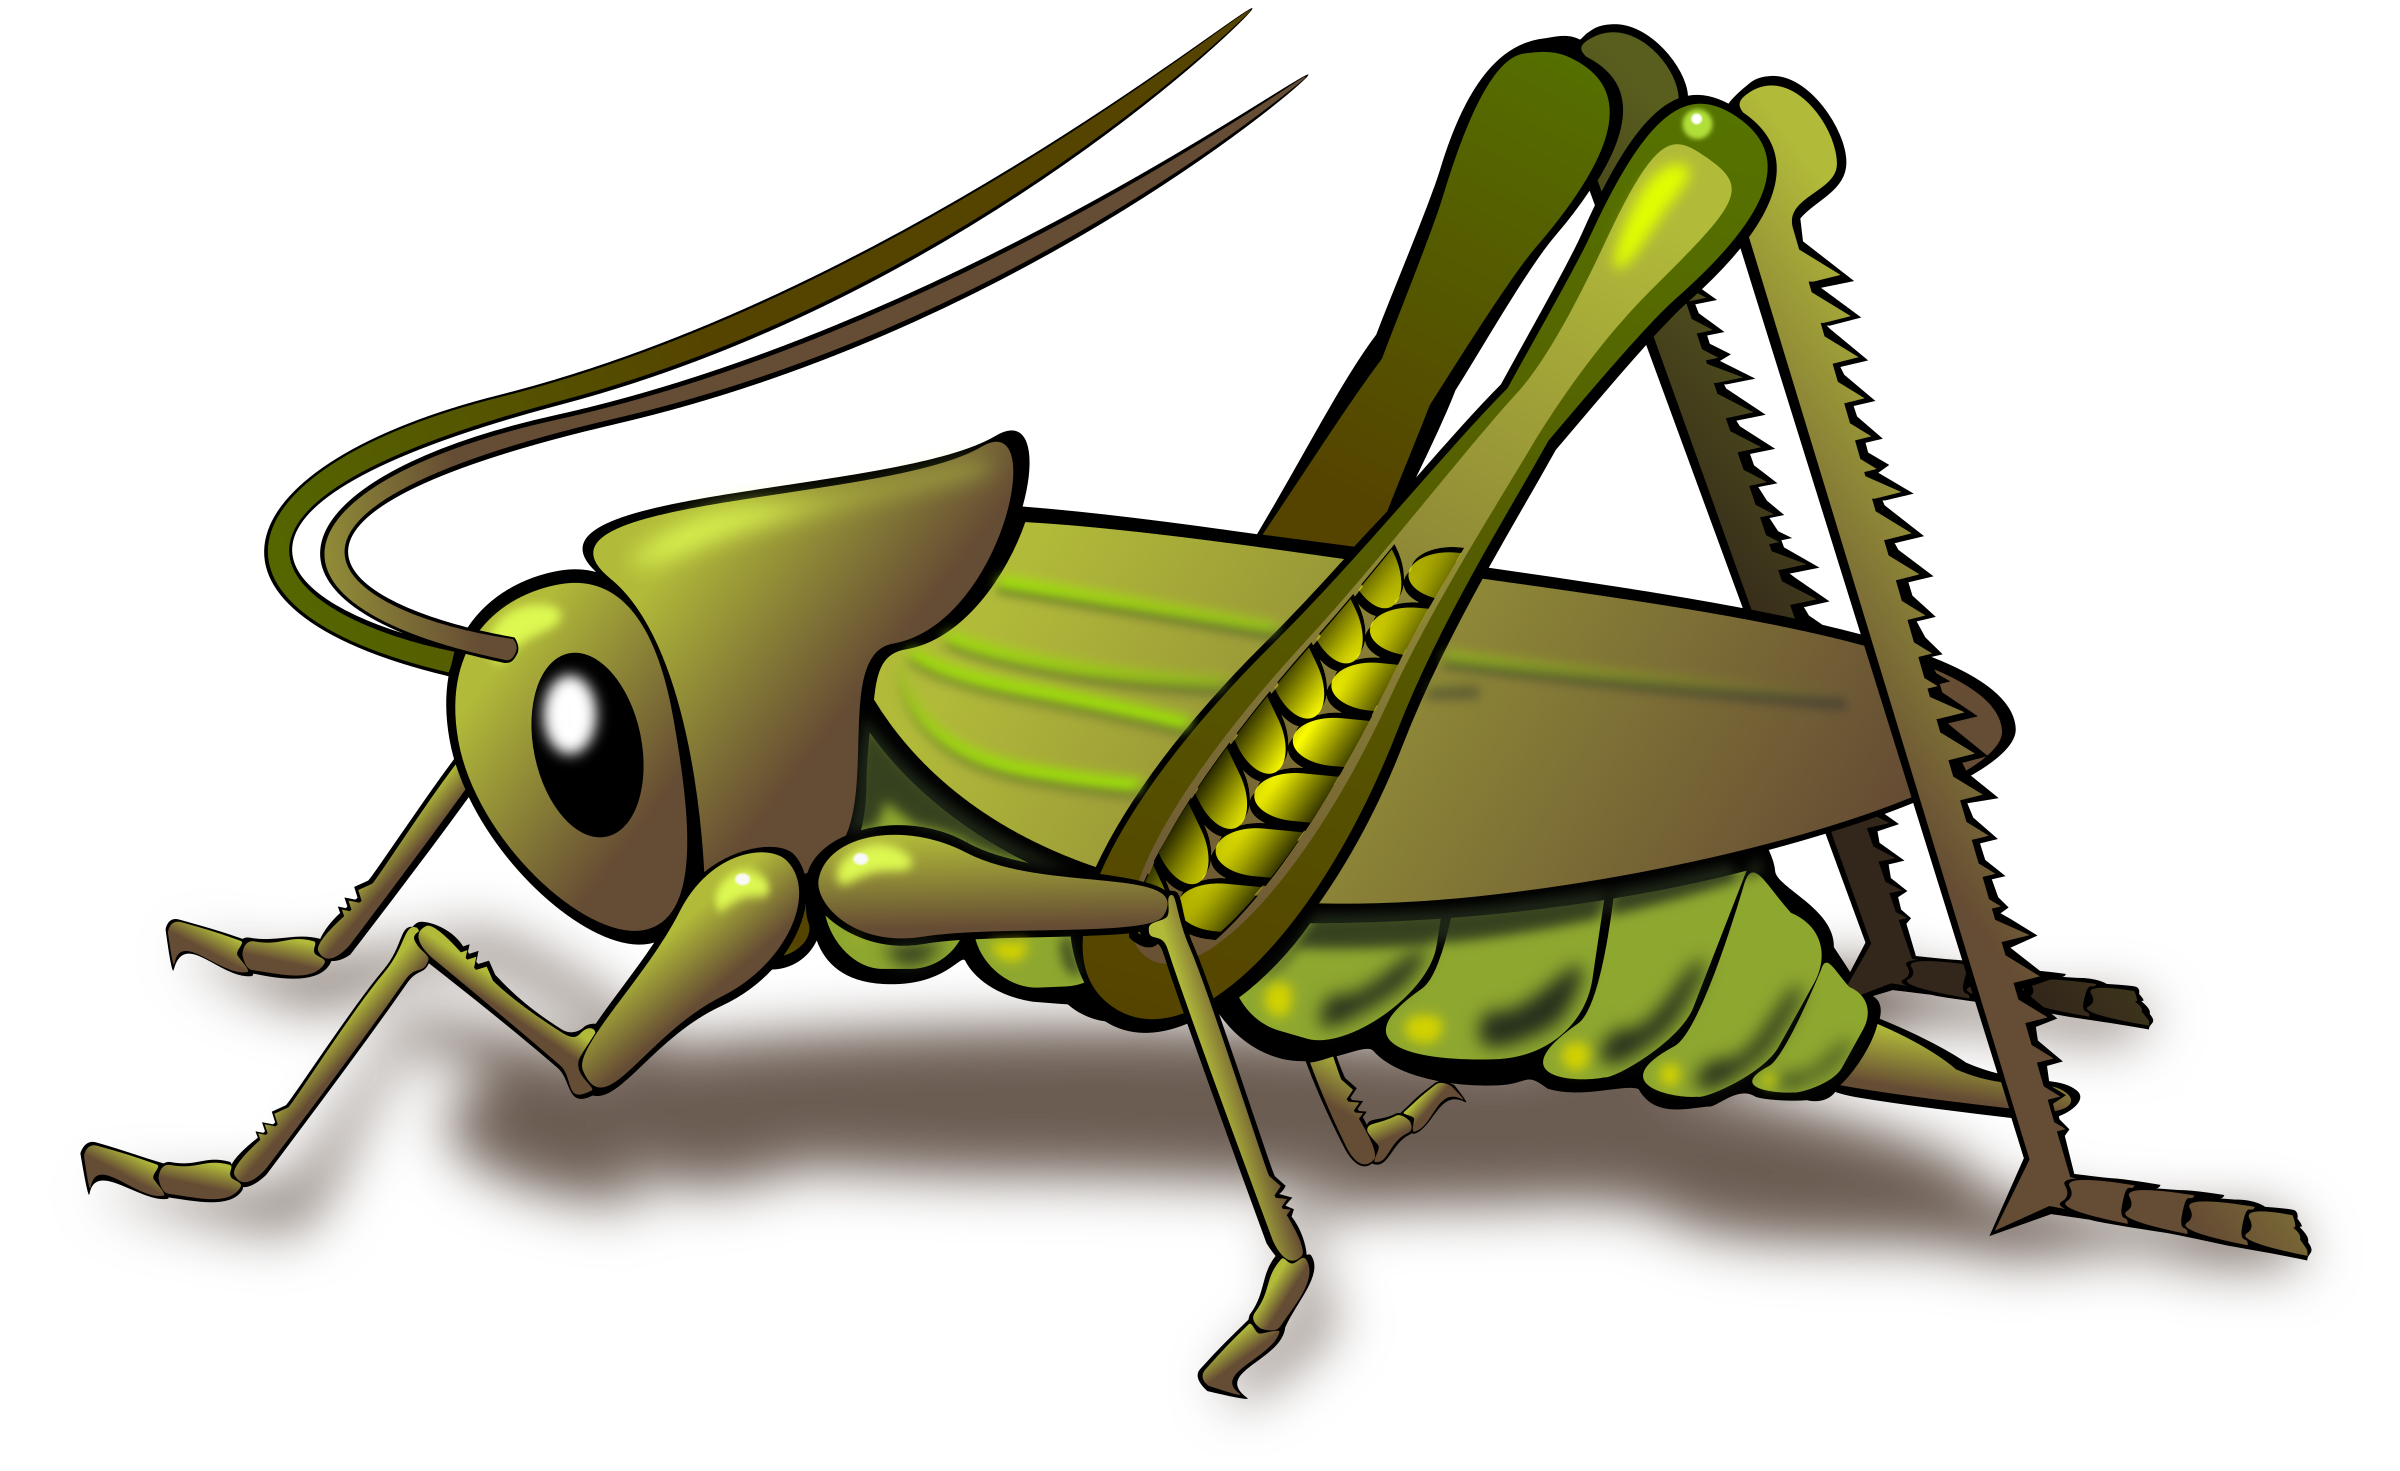 Grasshopper clipart #10, Download drawings